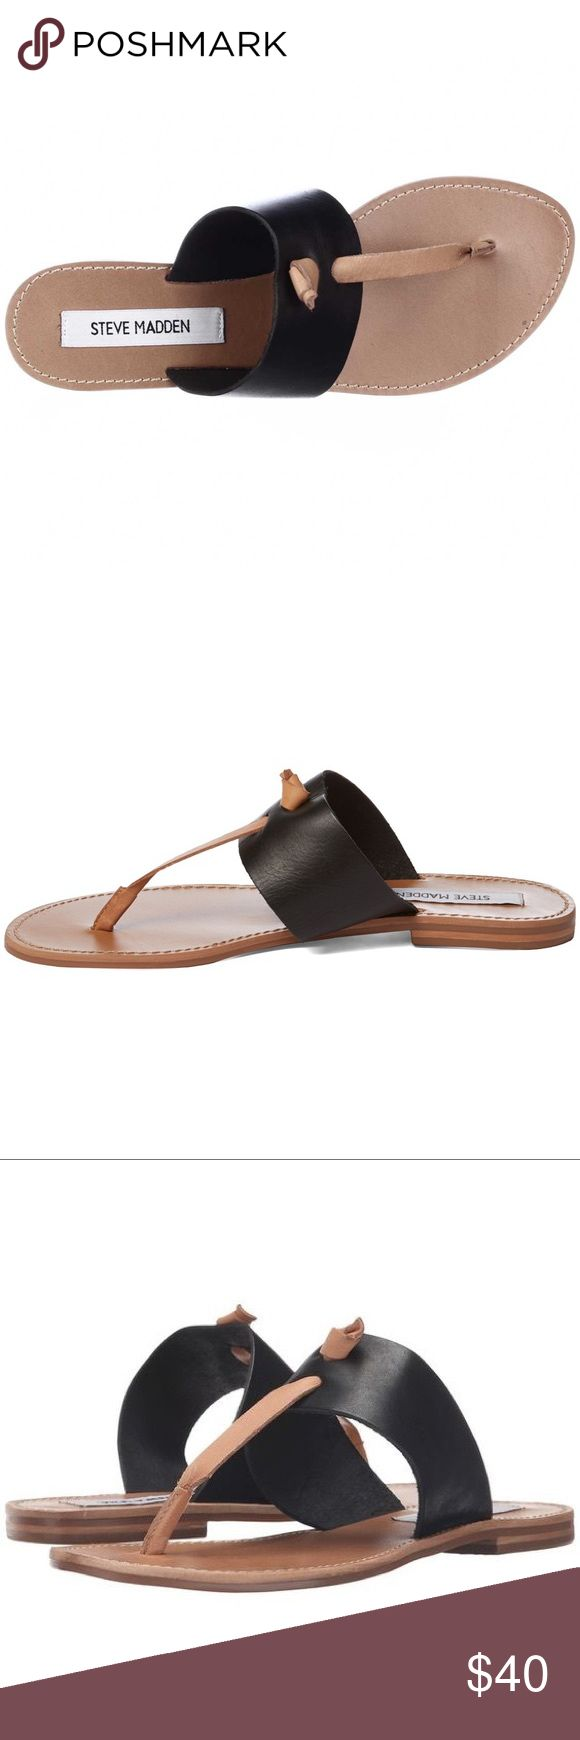 """Steve Madden Sandals NWT Steve Madden Olivia Black Leather Thong Sandals that we can't resist! A toe thong upper meets a knotted accent, and leather strap in cognac brown. 0.25"""" stacked rubber heel, smooth leather insole, nonskid rubber sole, genuine leather upper, balance man made. Imported. Brand new, never worn, comes with original box and wrappings. Steve Madden Shoes"""